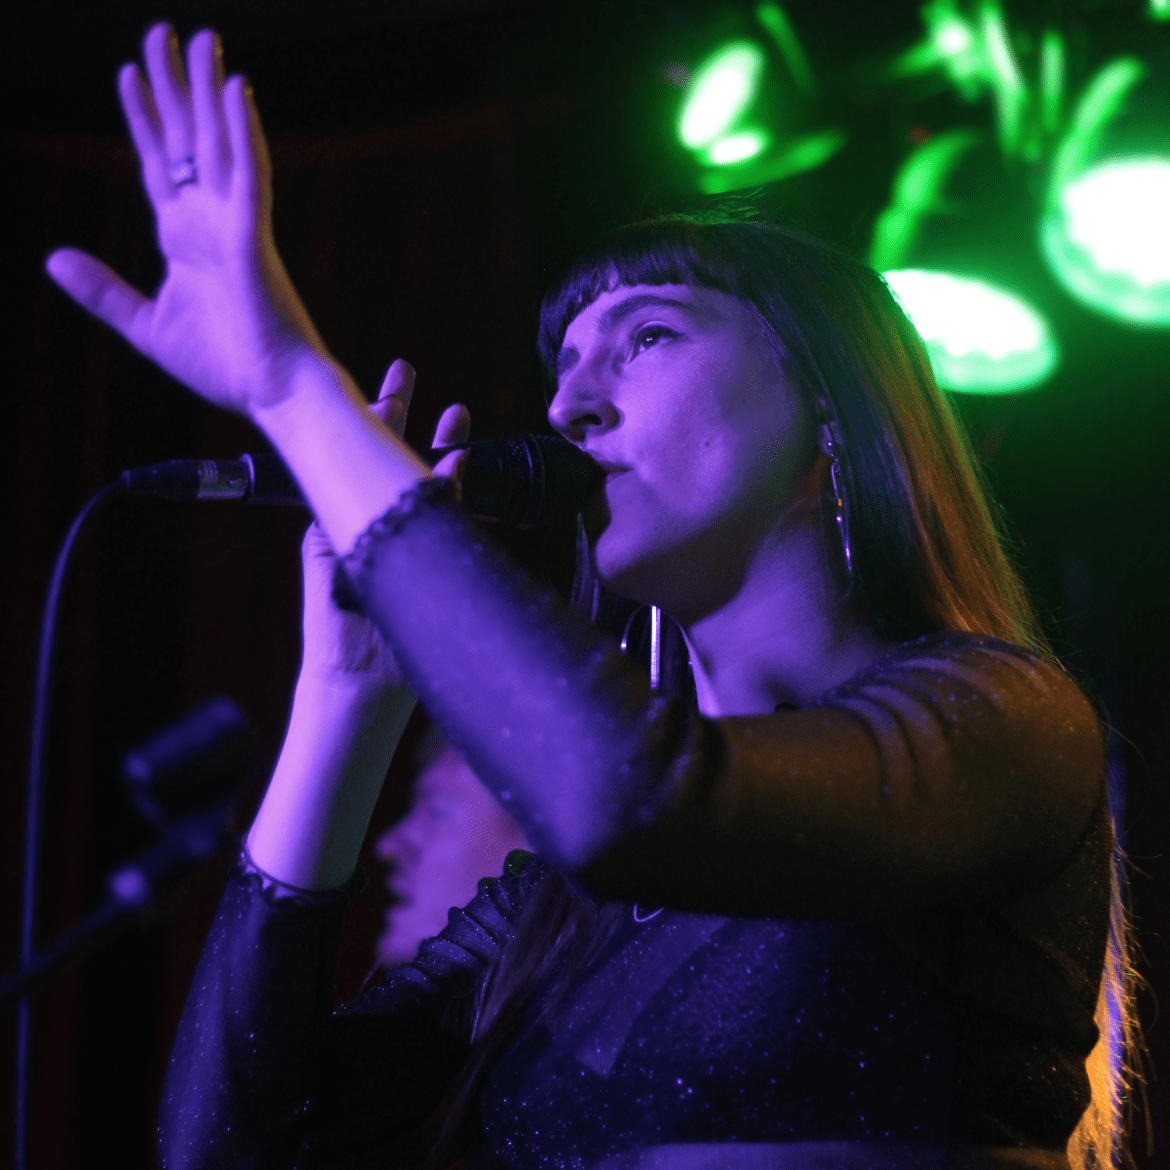 FOURS playing Hidden Herd vs Lost In The Manor at The Finsbury in London on 17.03.16